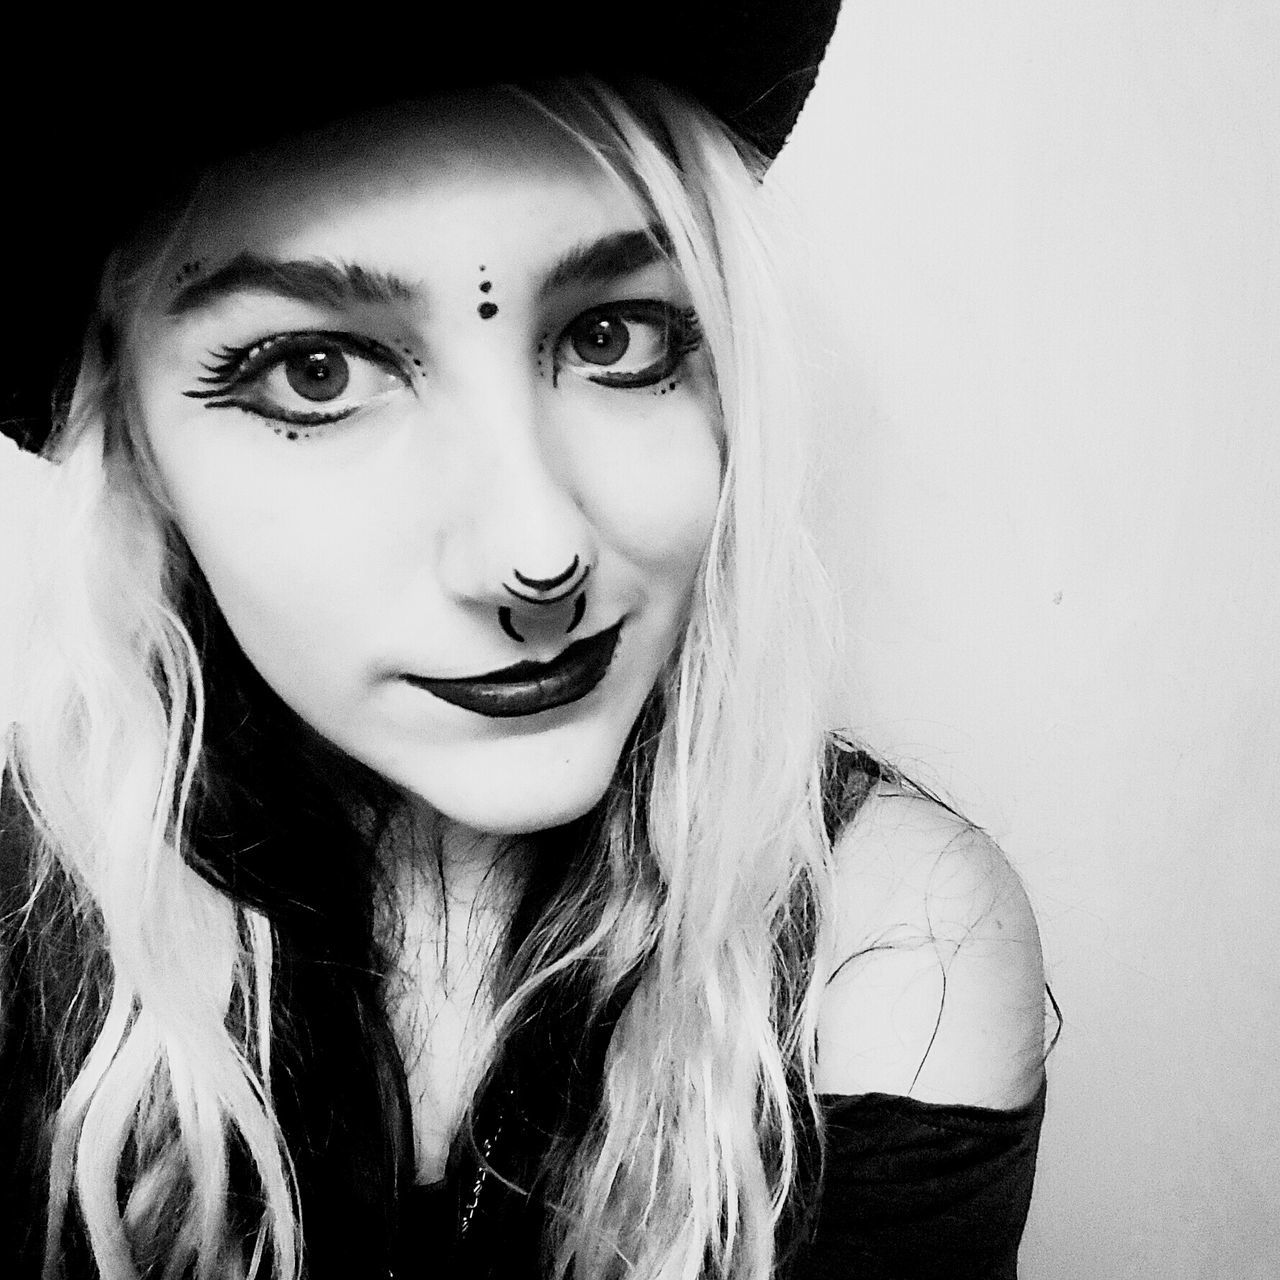 Looking At Camera Portrait Close-up Smiling Front View Human Face Headshot Adult Beauty Witchy Black And White Witch Facepaint Selfıe Bowler Hat Young Adult Beautiful Woman Only Women Beautiful People One Person Adults Only Young Women One Woman Only One Young Woman Only People